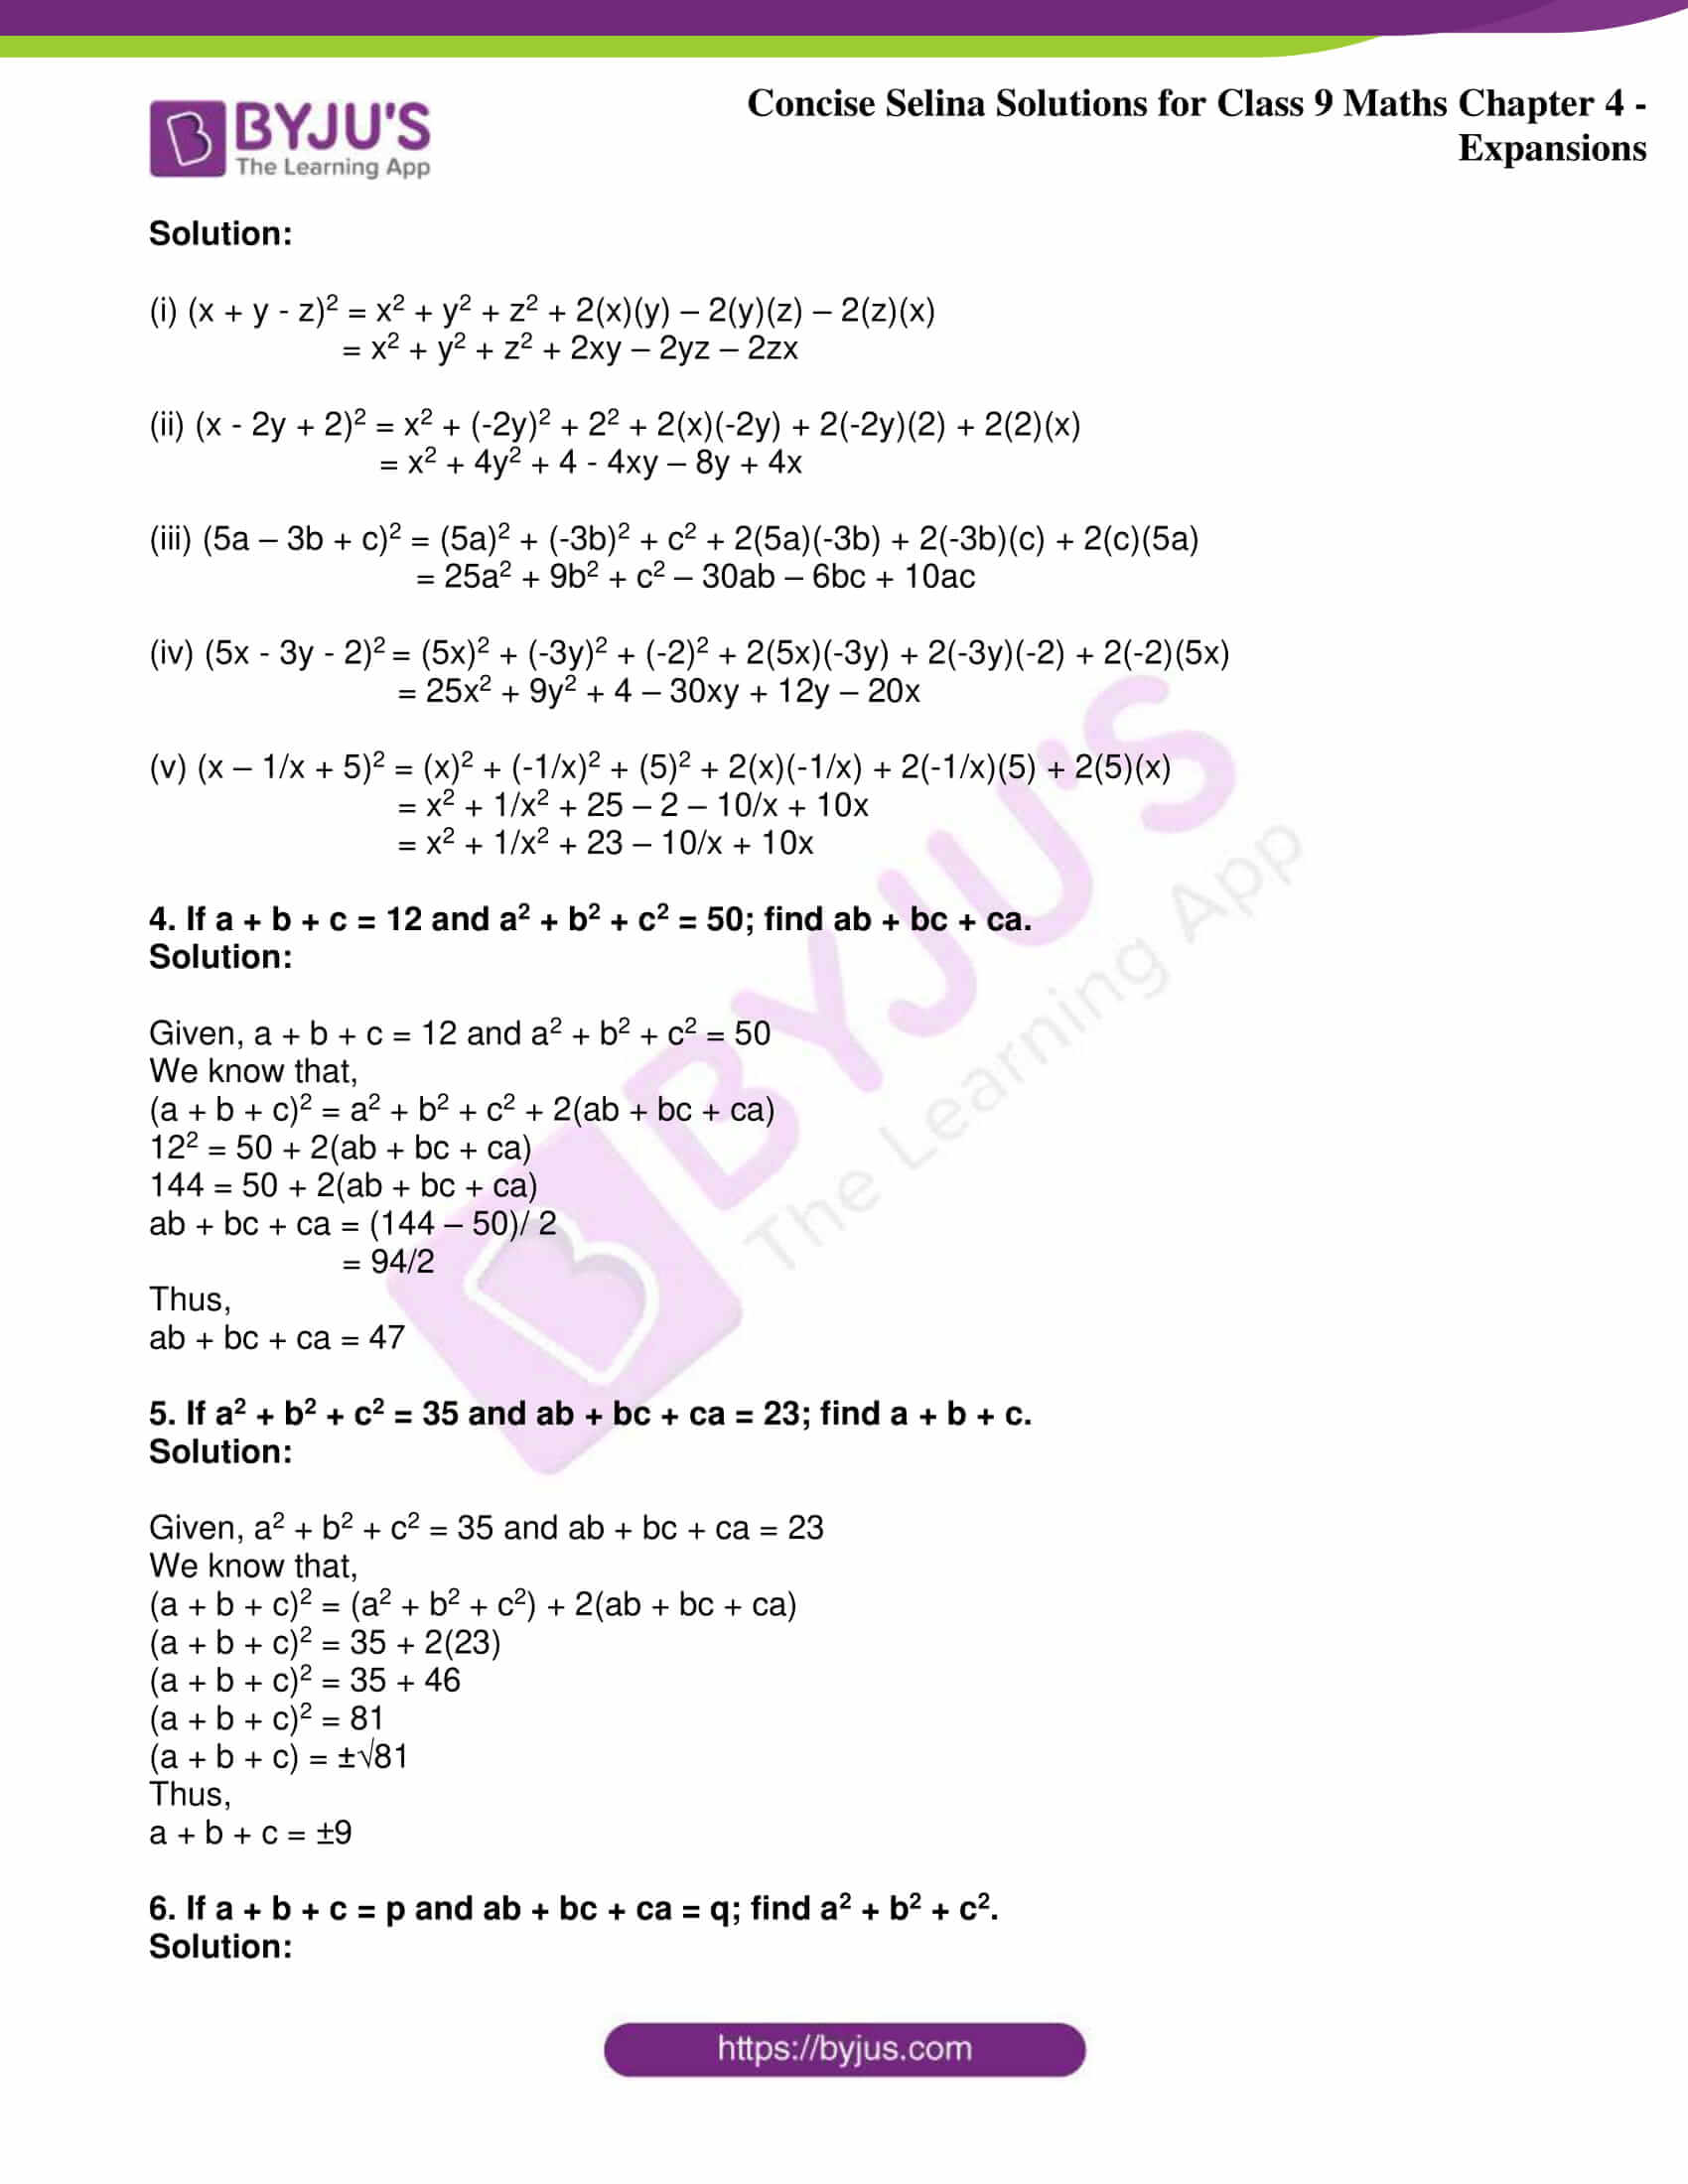 icse class 9 maths may10 selina solutions chapter 4 expansions 19